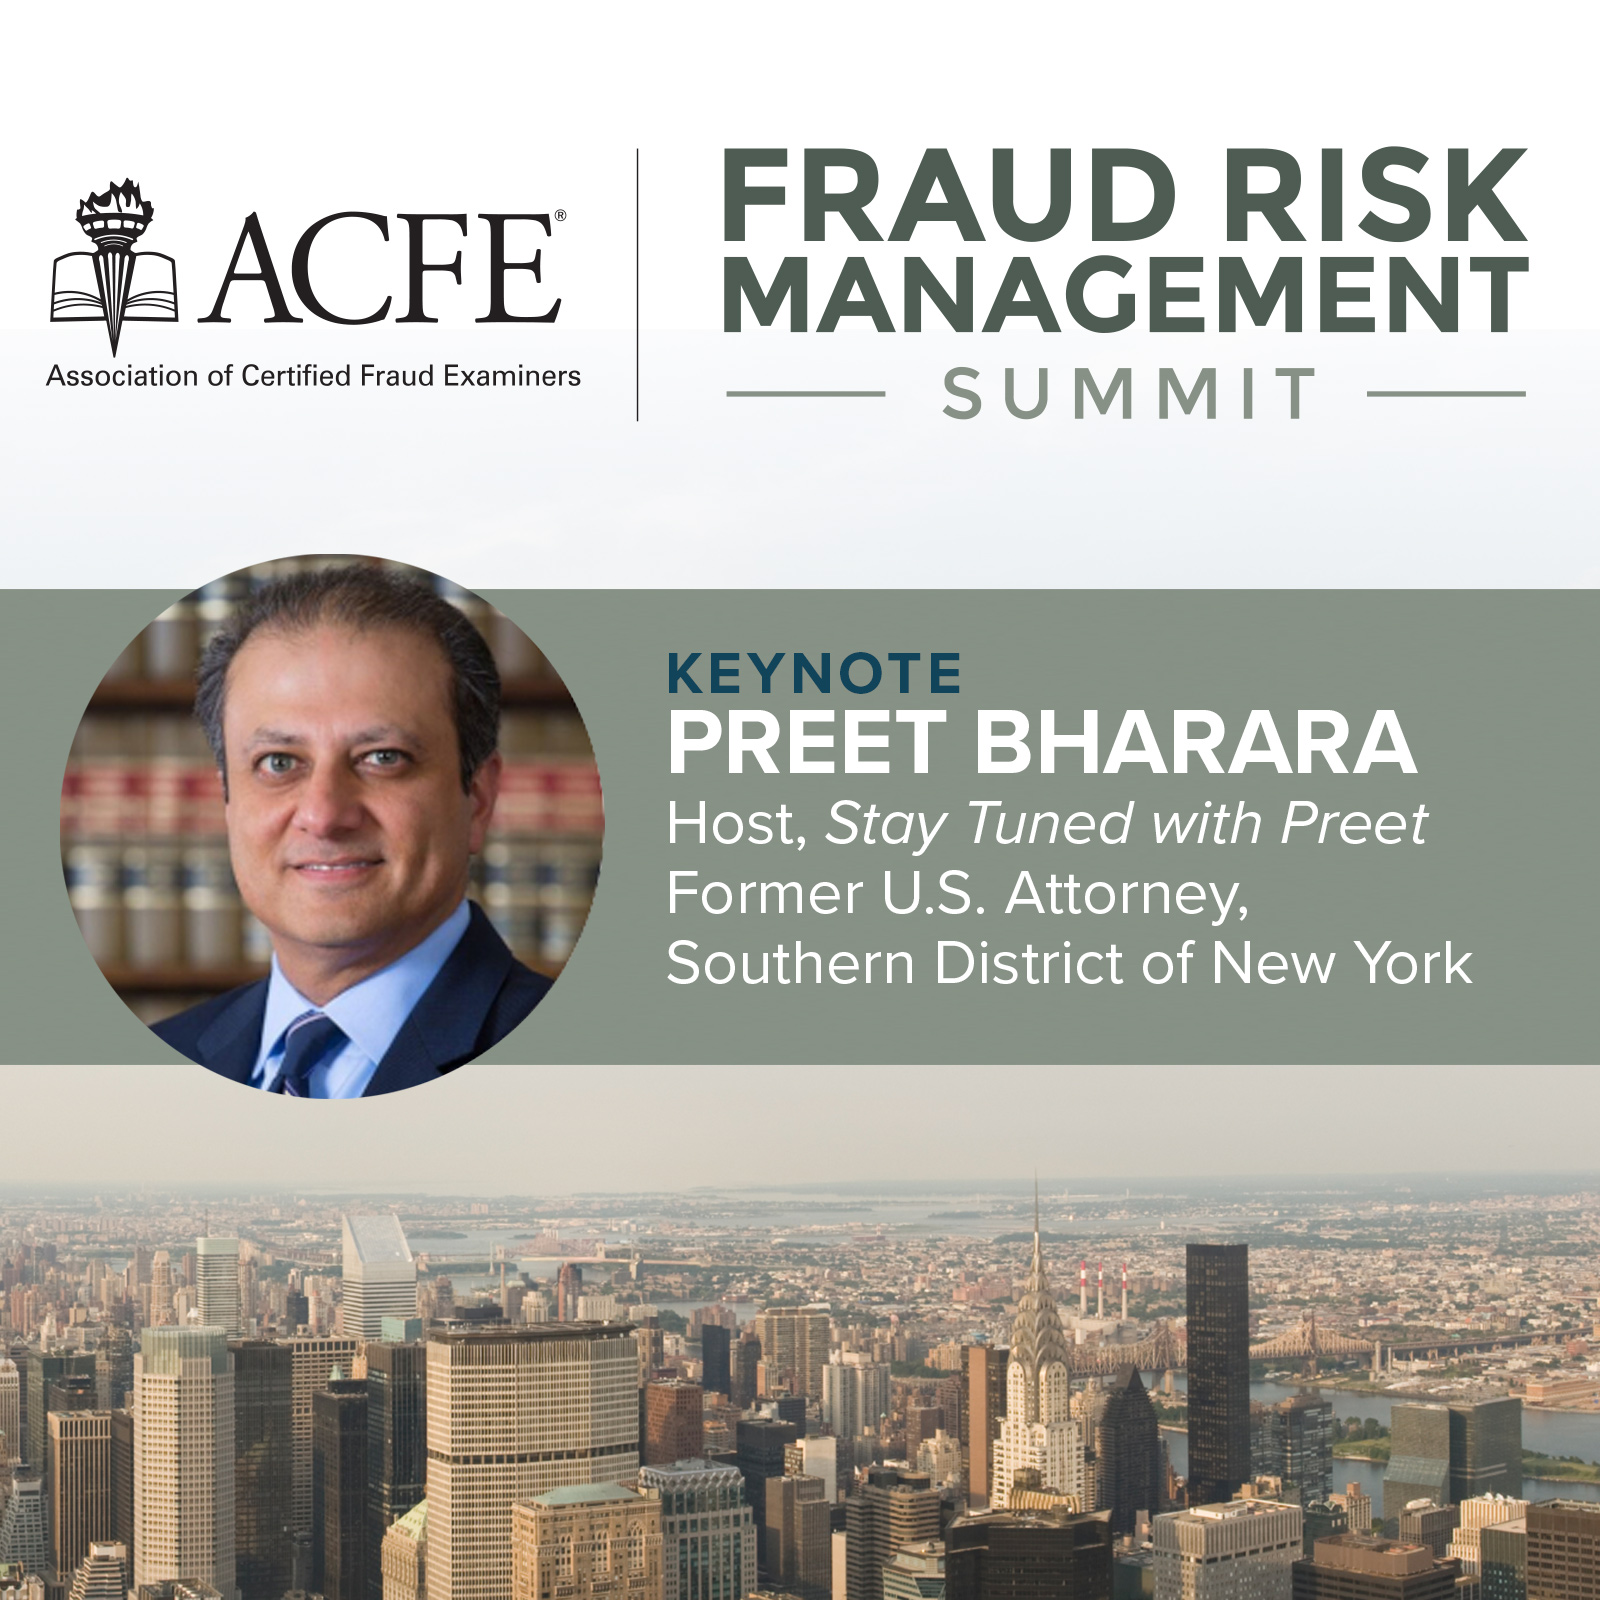 preet-bharara-2019-fraud-risk-management-summit-acfe.jpg